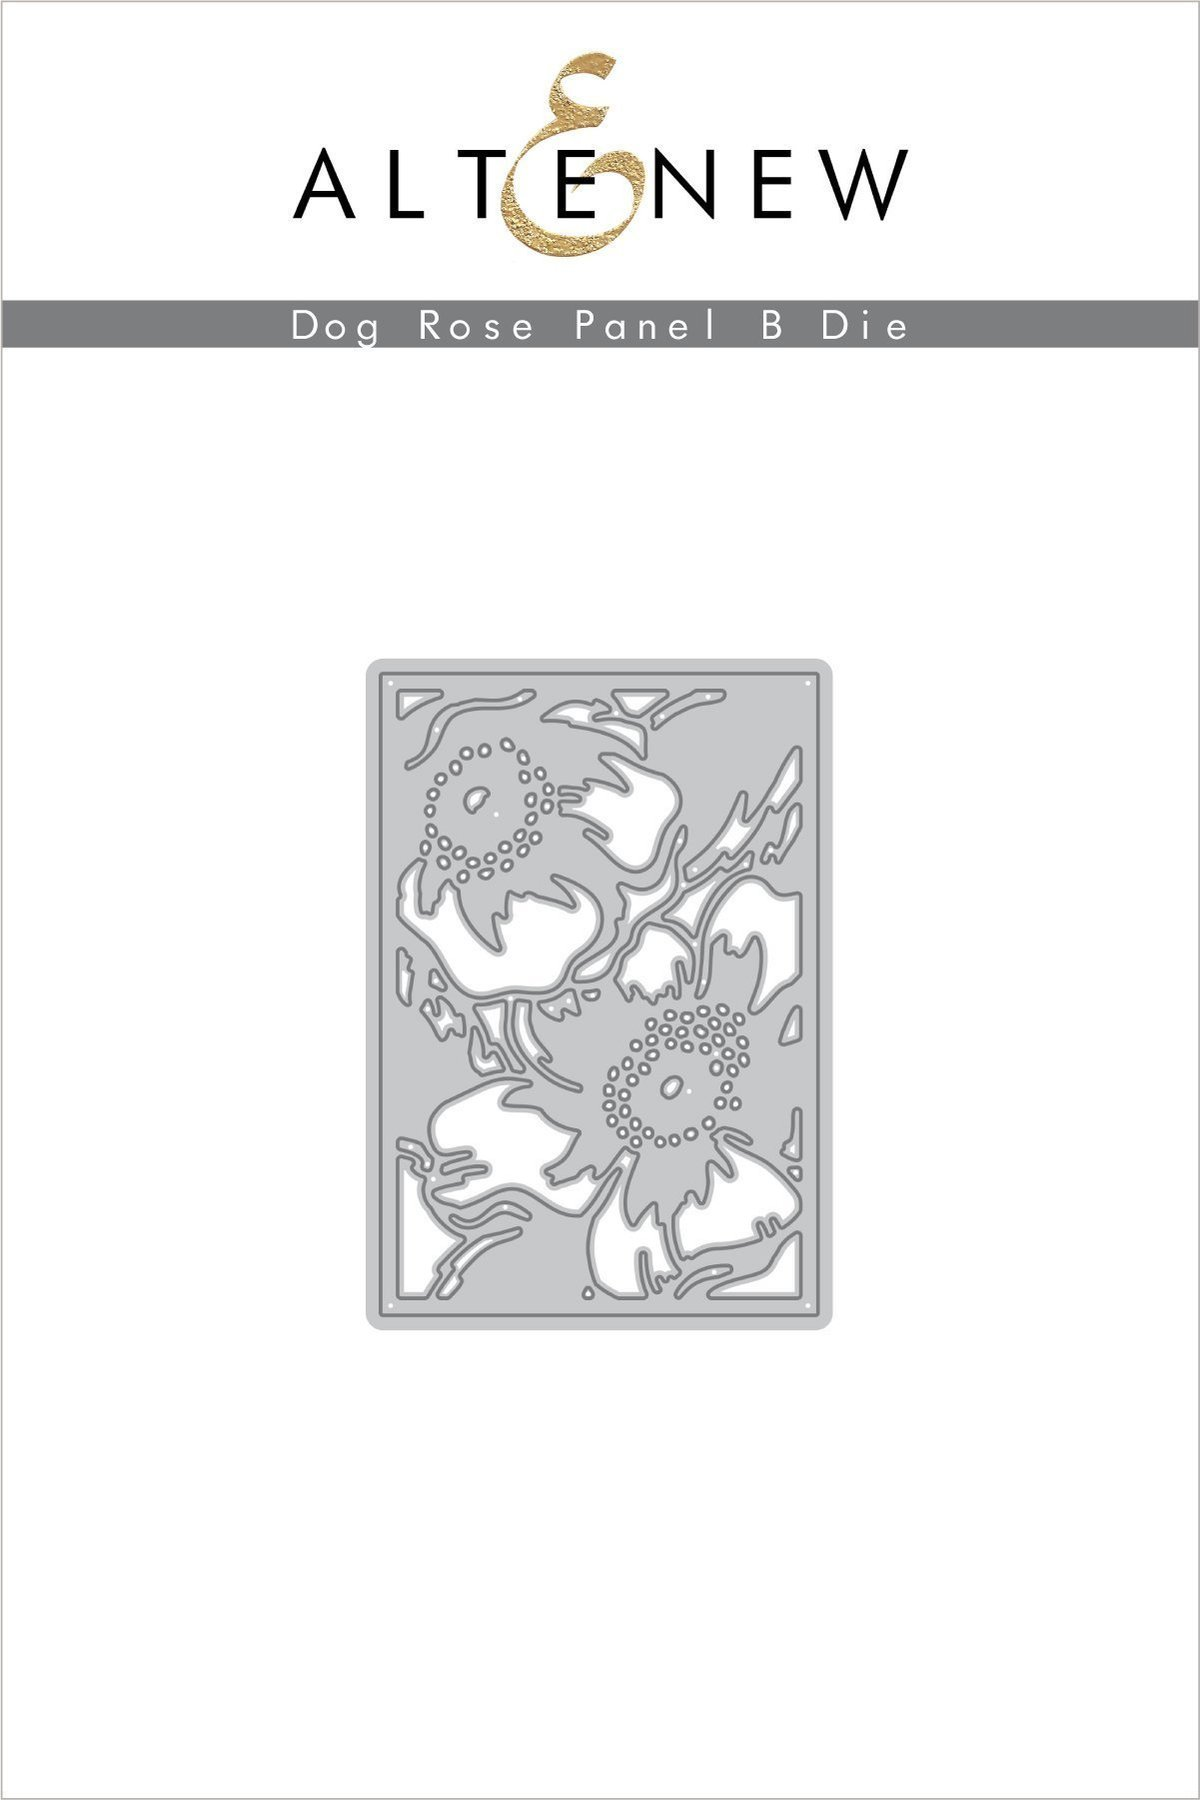 Dog Rose Panel B Die